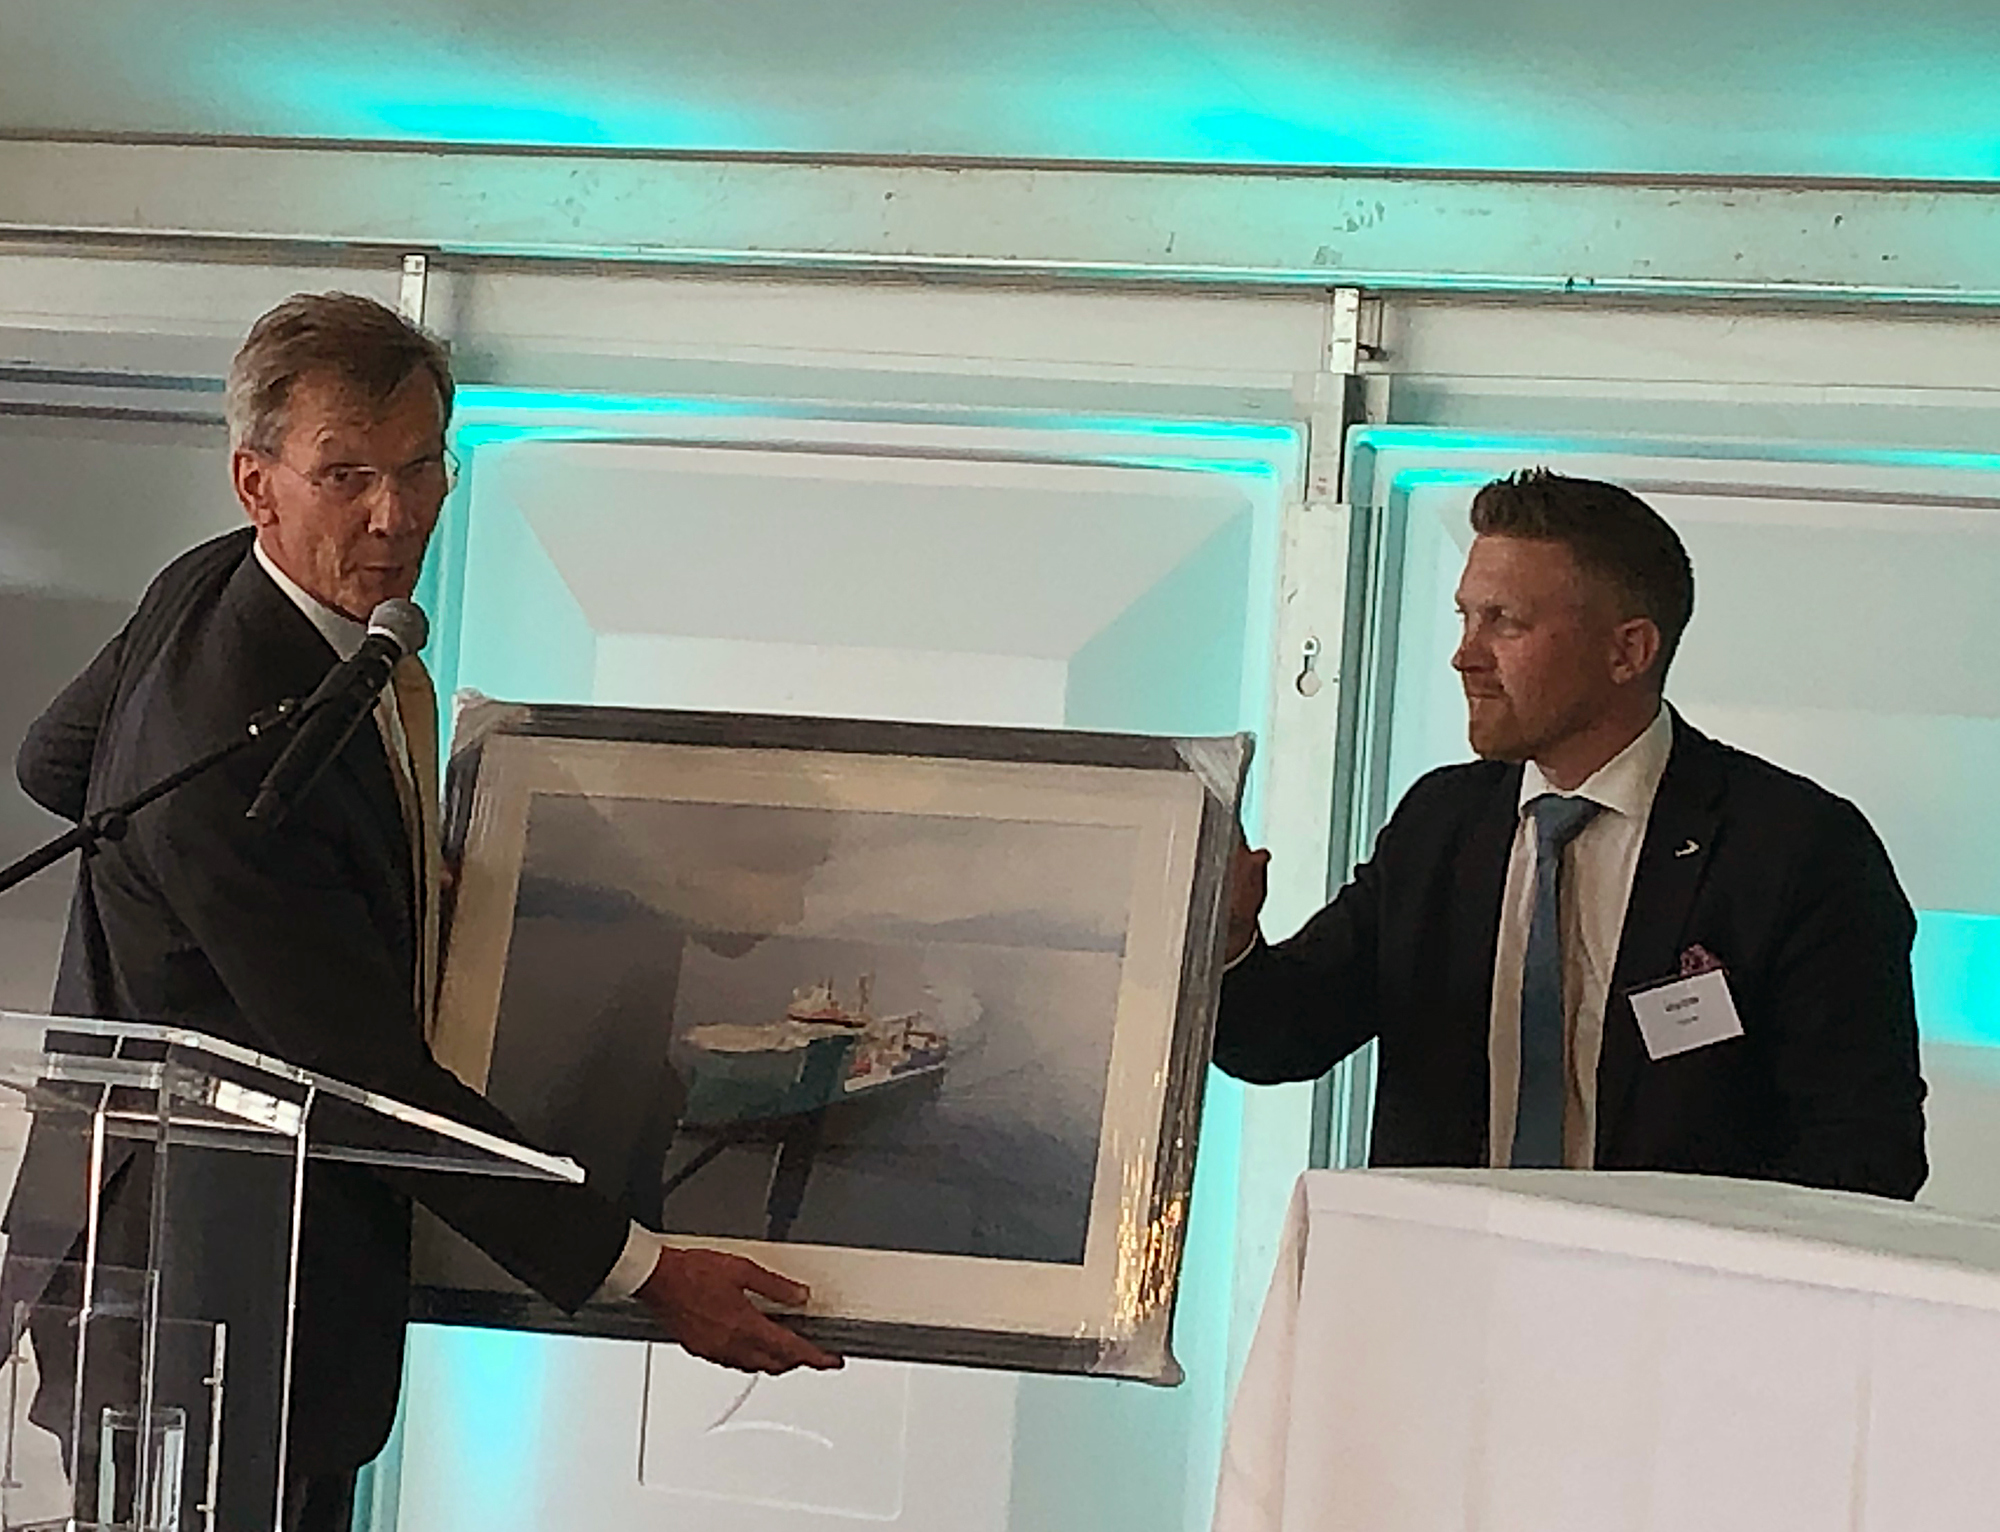 Rob Boer, head of Acta Marine, received a photo of the 'Acta Centaurus' from Ulstein Verft's Trond Skodjevåg Bø at the naming ceremony.